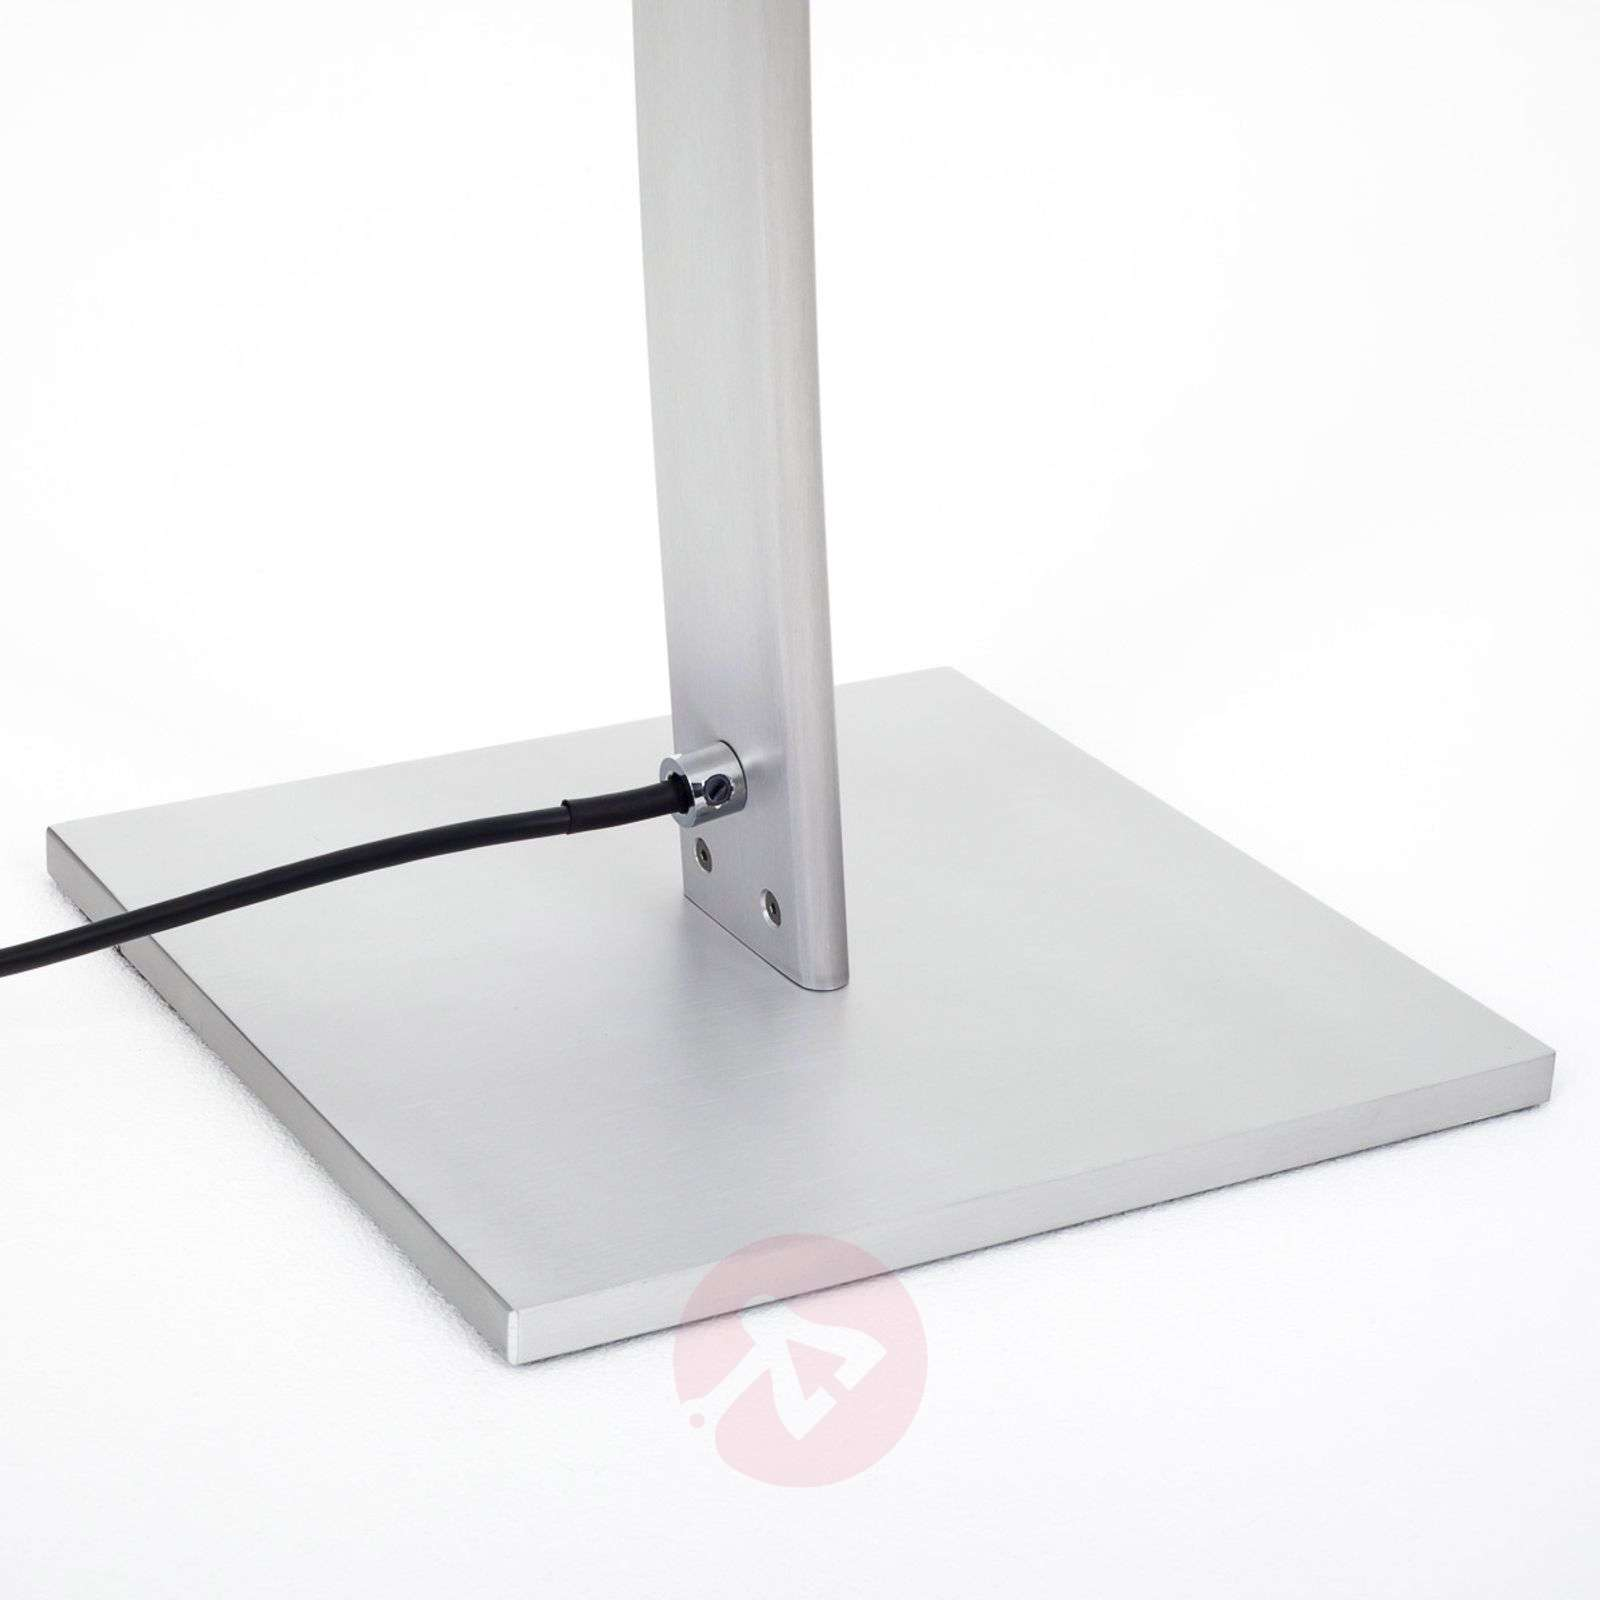 Lampadaire LED Xalu à int variable blanc chaud-6722016-01